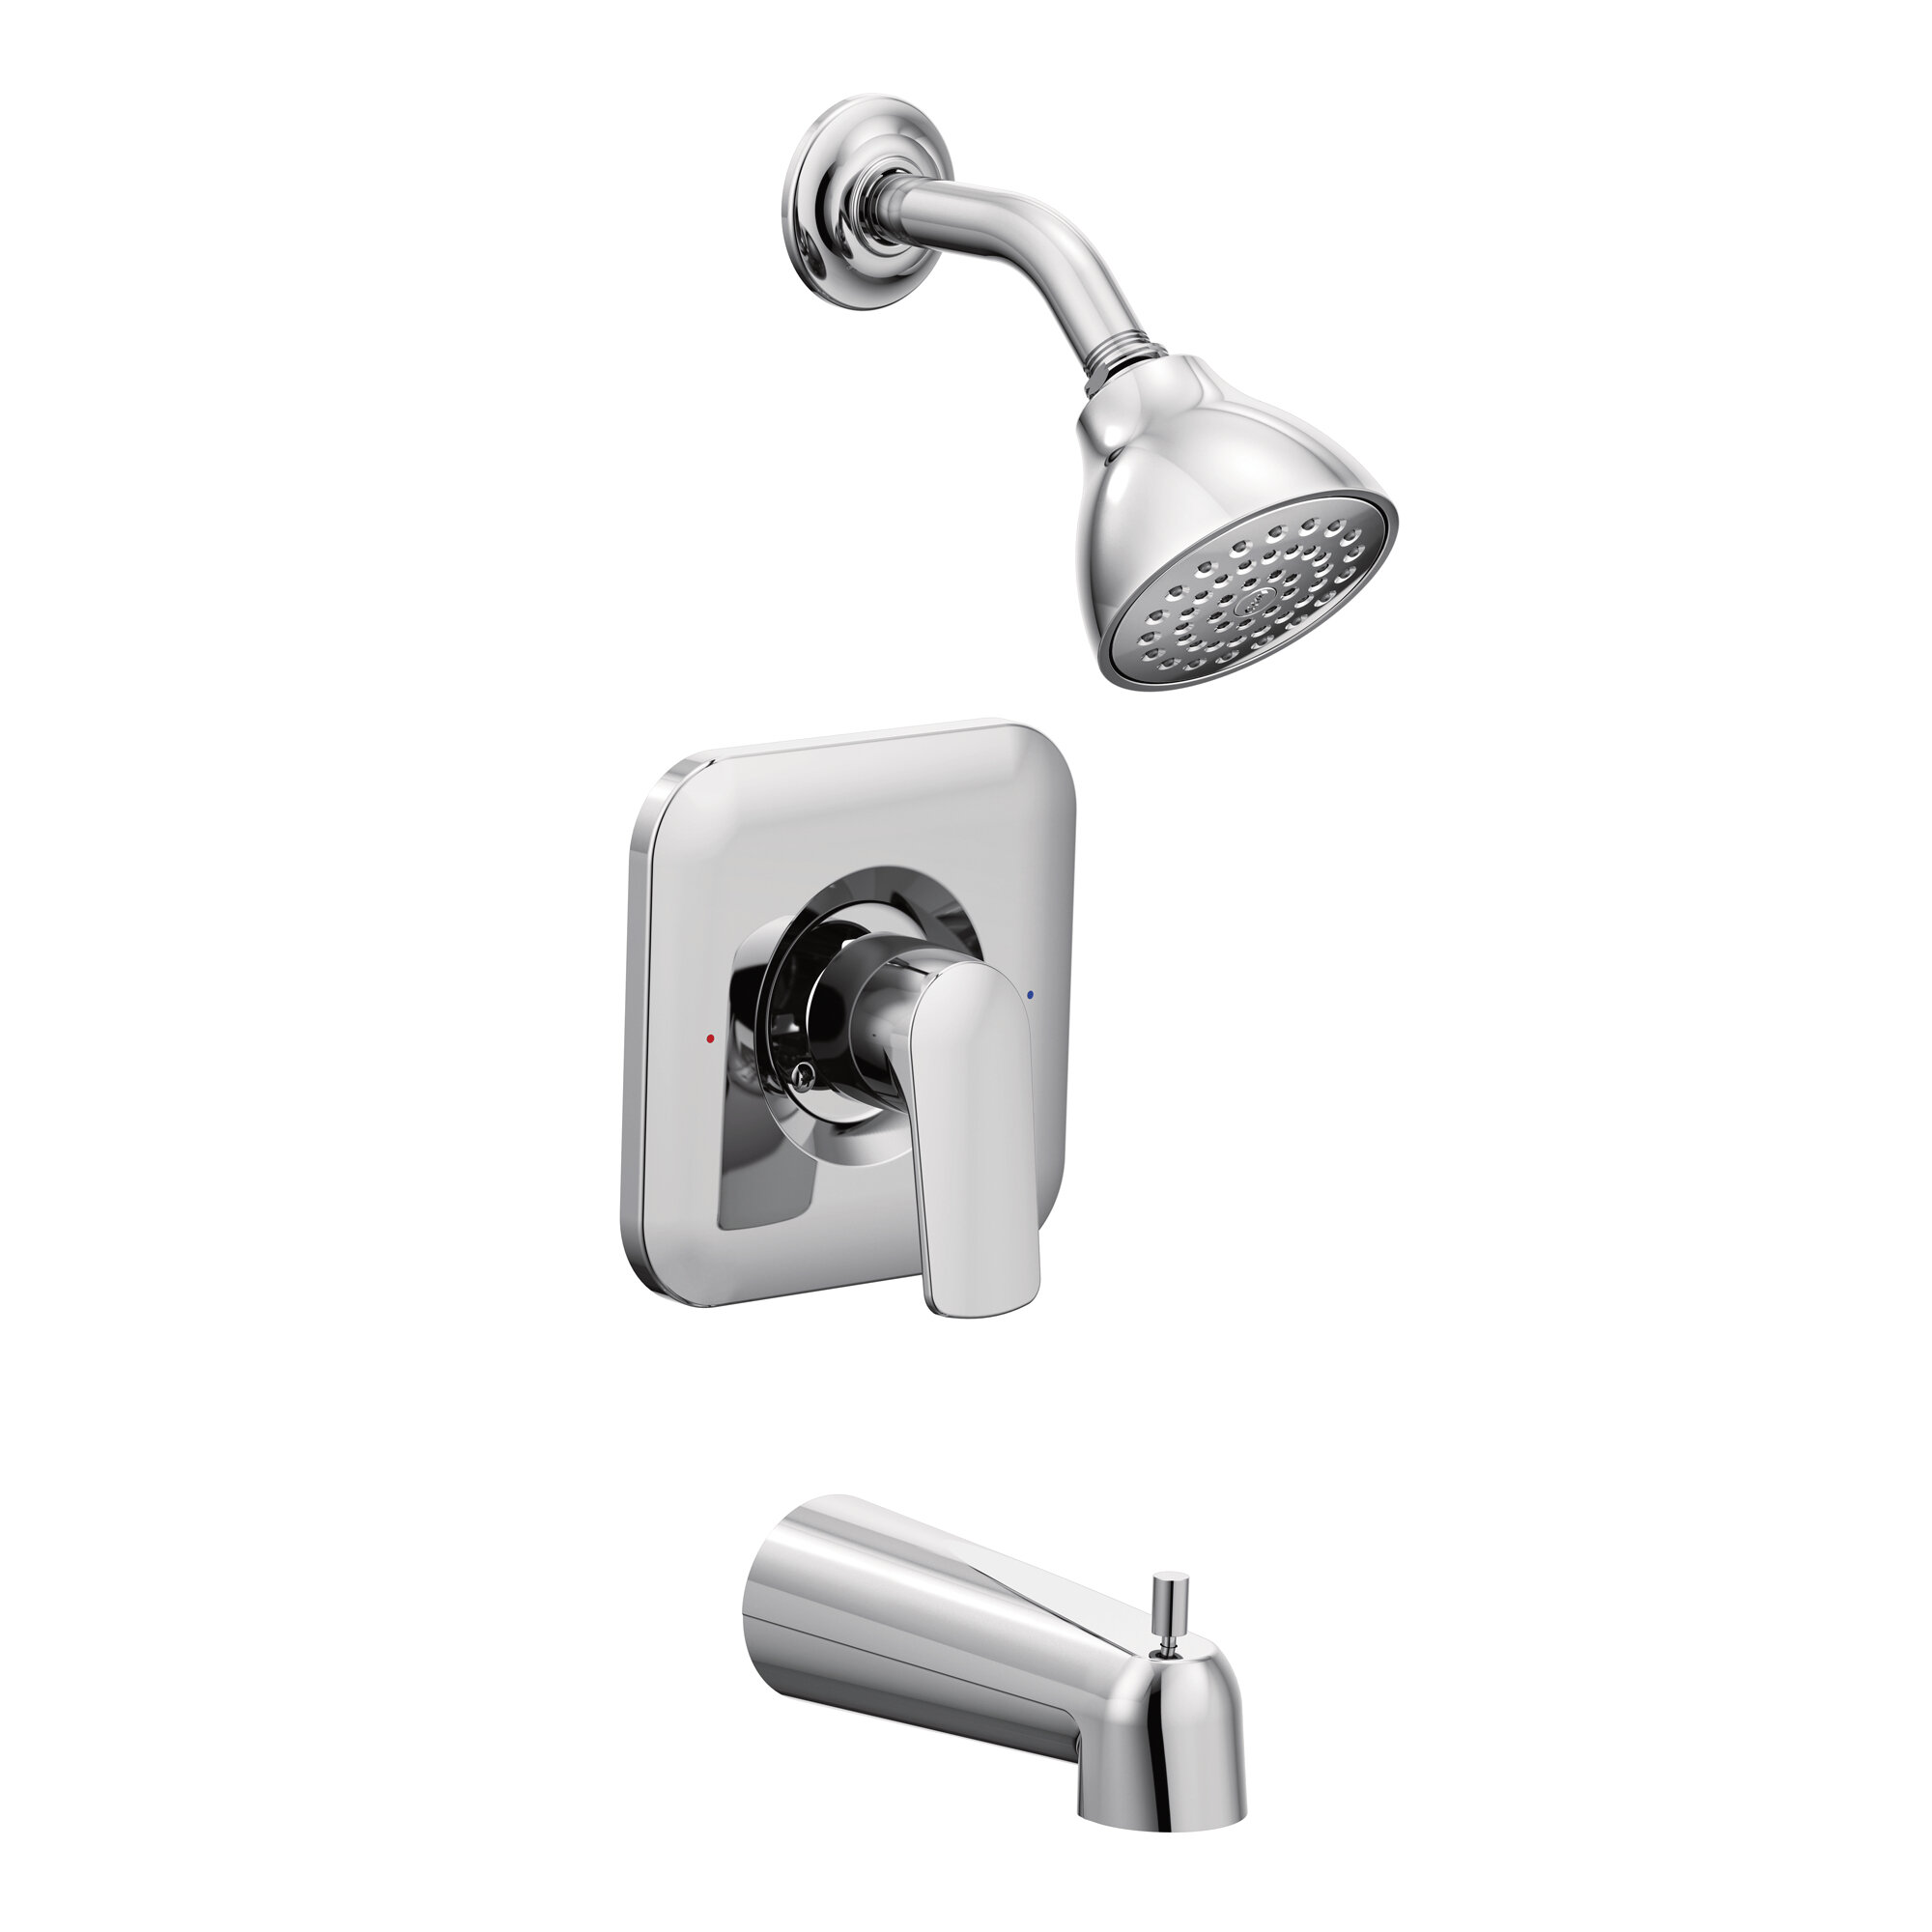 T2813 Moen Rizon Chrome Tub And Shower Faucet With Handle And Posi Temp Reviews Wayfair